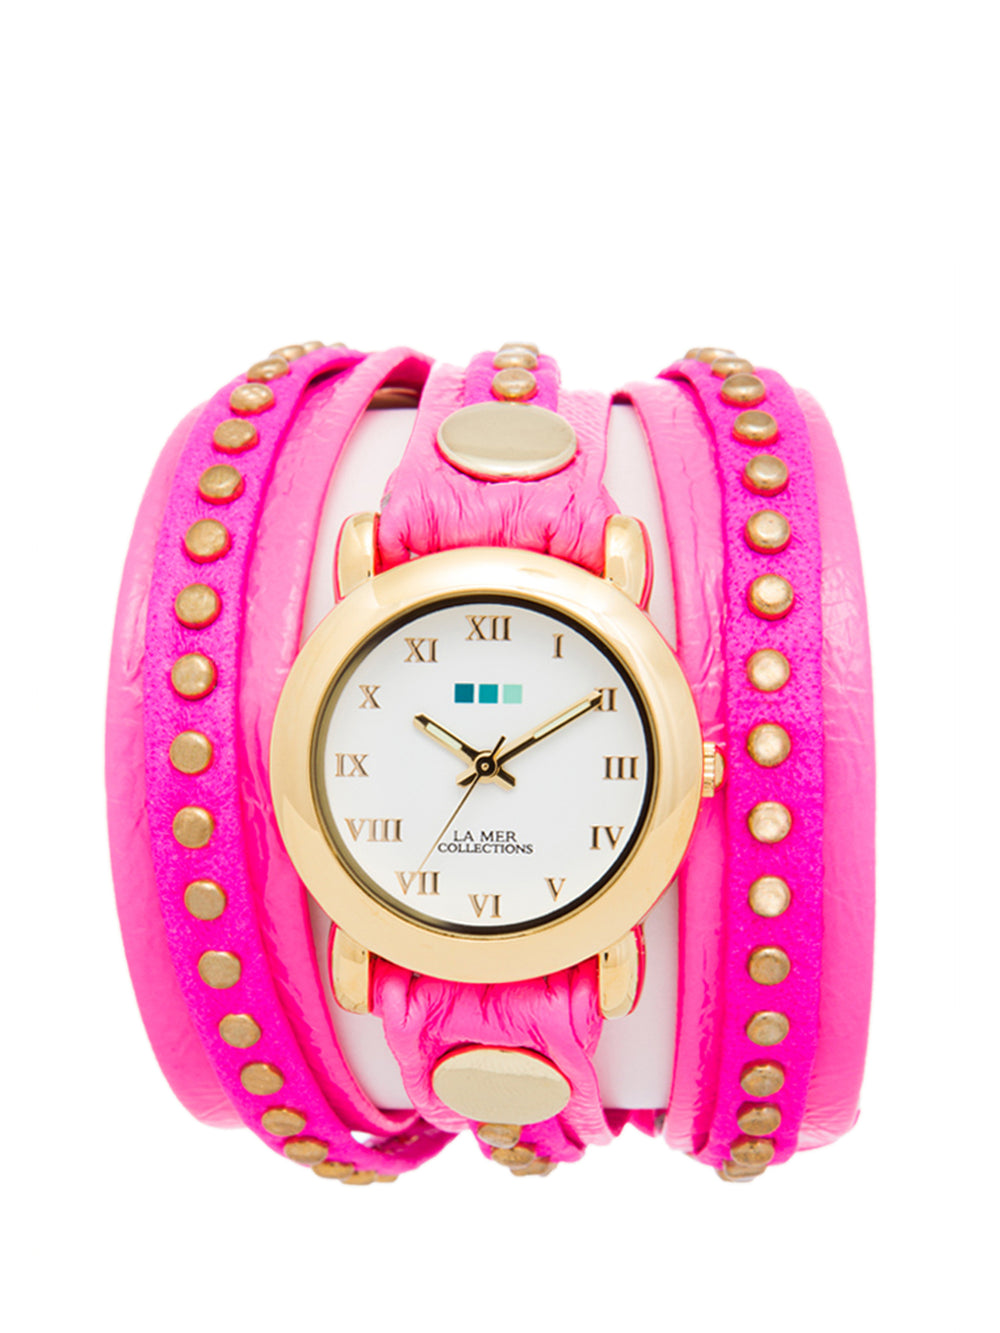 Neon Pink - Gold color watch, LA MER COLLECTIONS - elilhaam.com